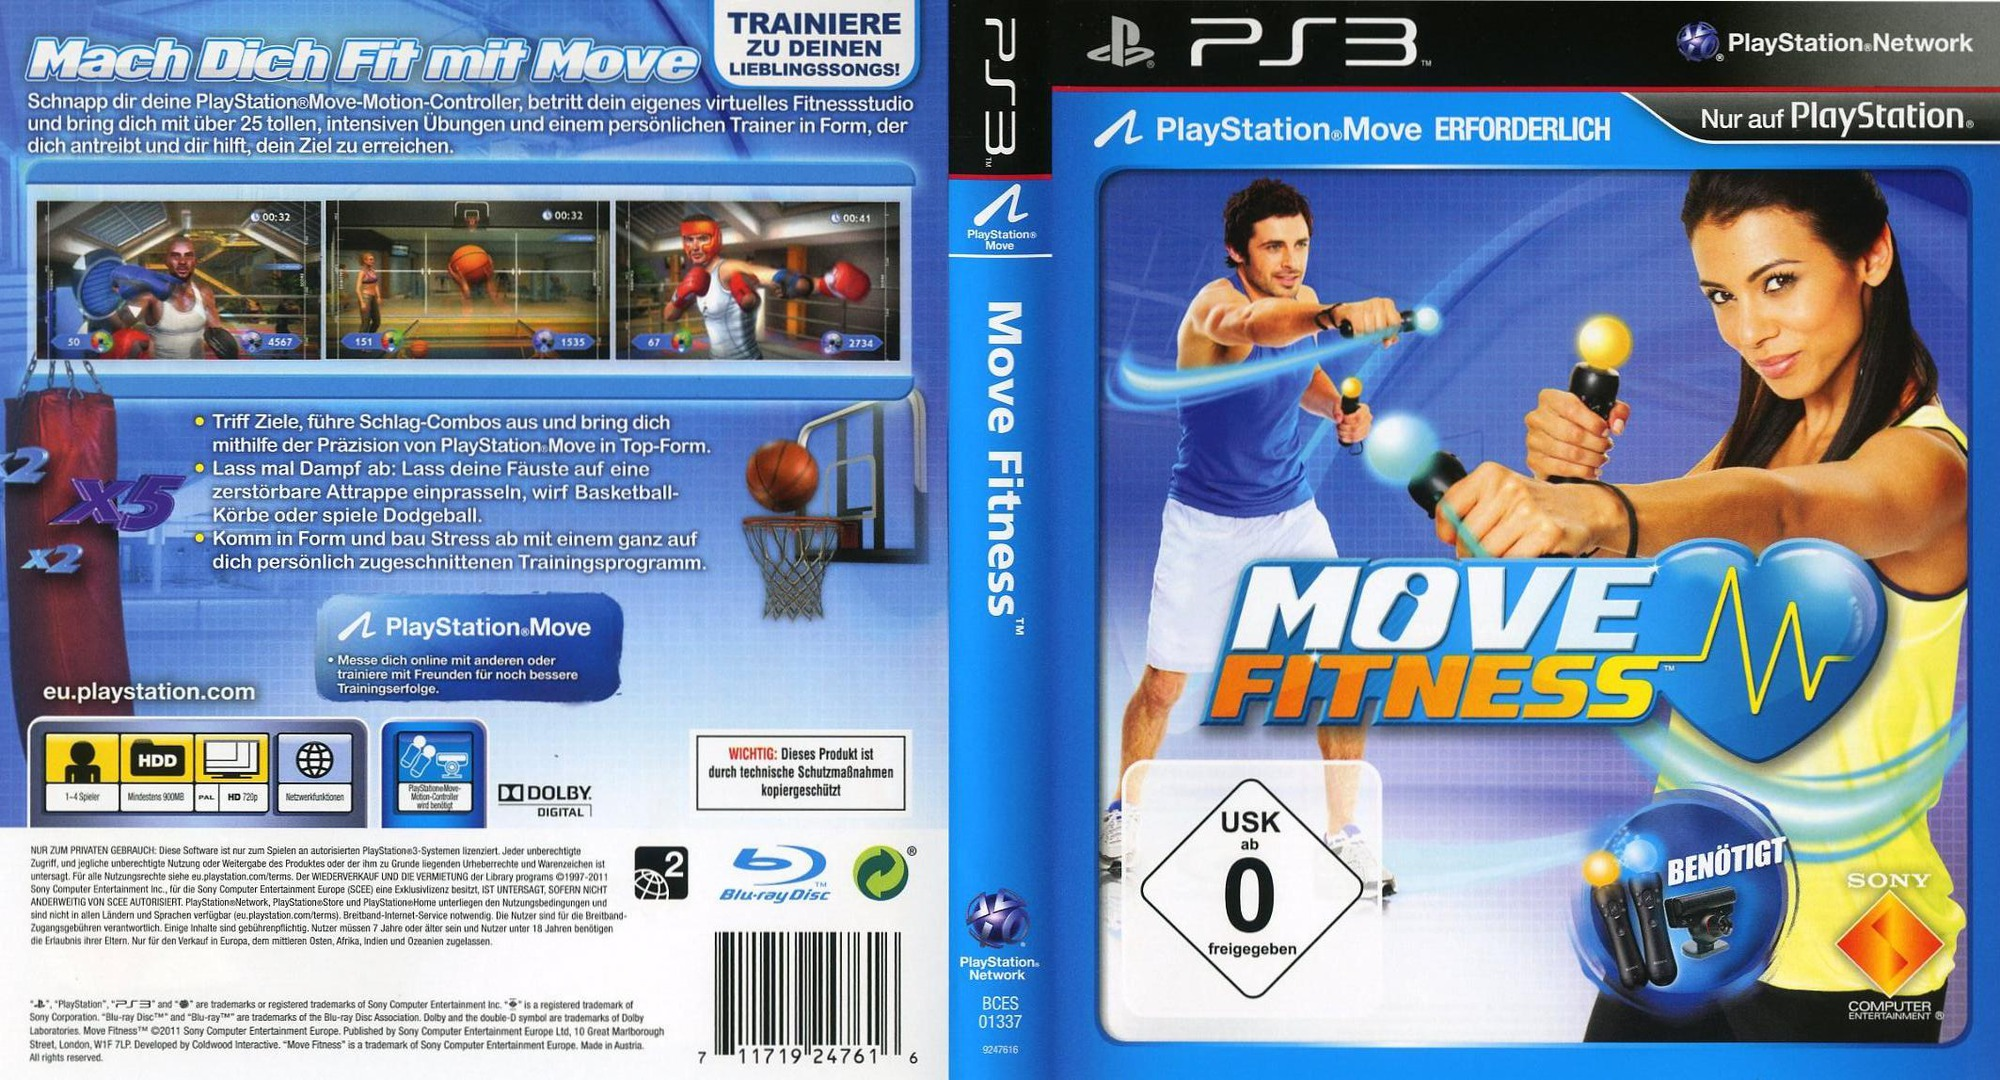 BCES01337 - Move Fitness